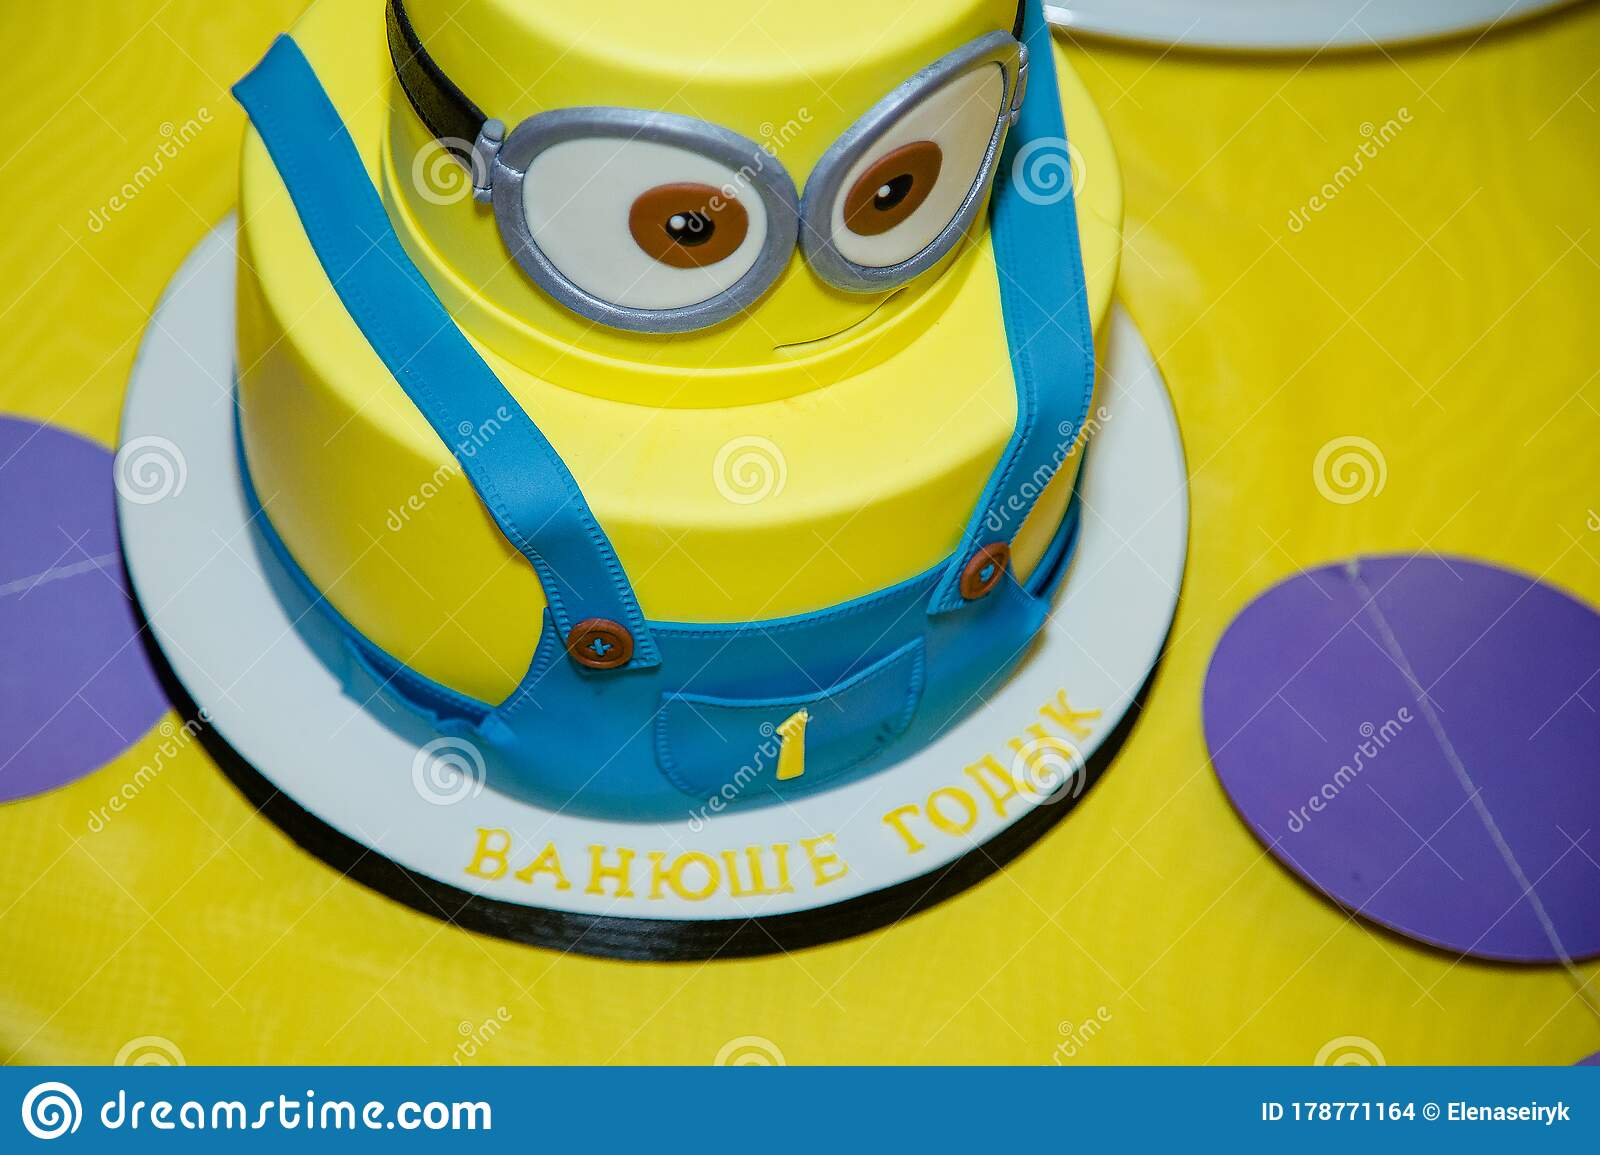 Birthday Cake In Minion Shape Cartoon Character Cake For Child Party Thematic Event Candy Bar Editorial Stock Image Image Of Cute Decoration 178771164